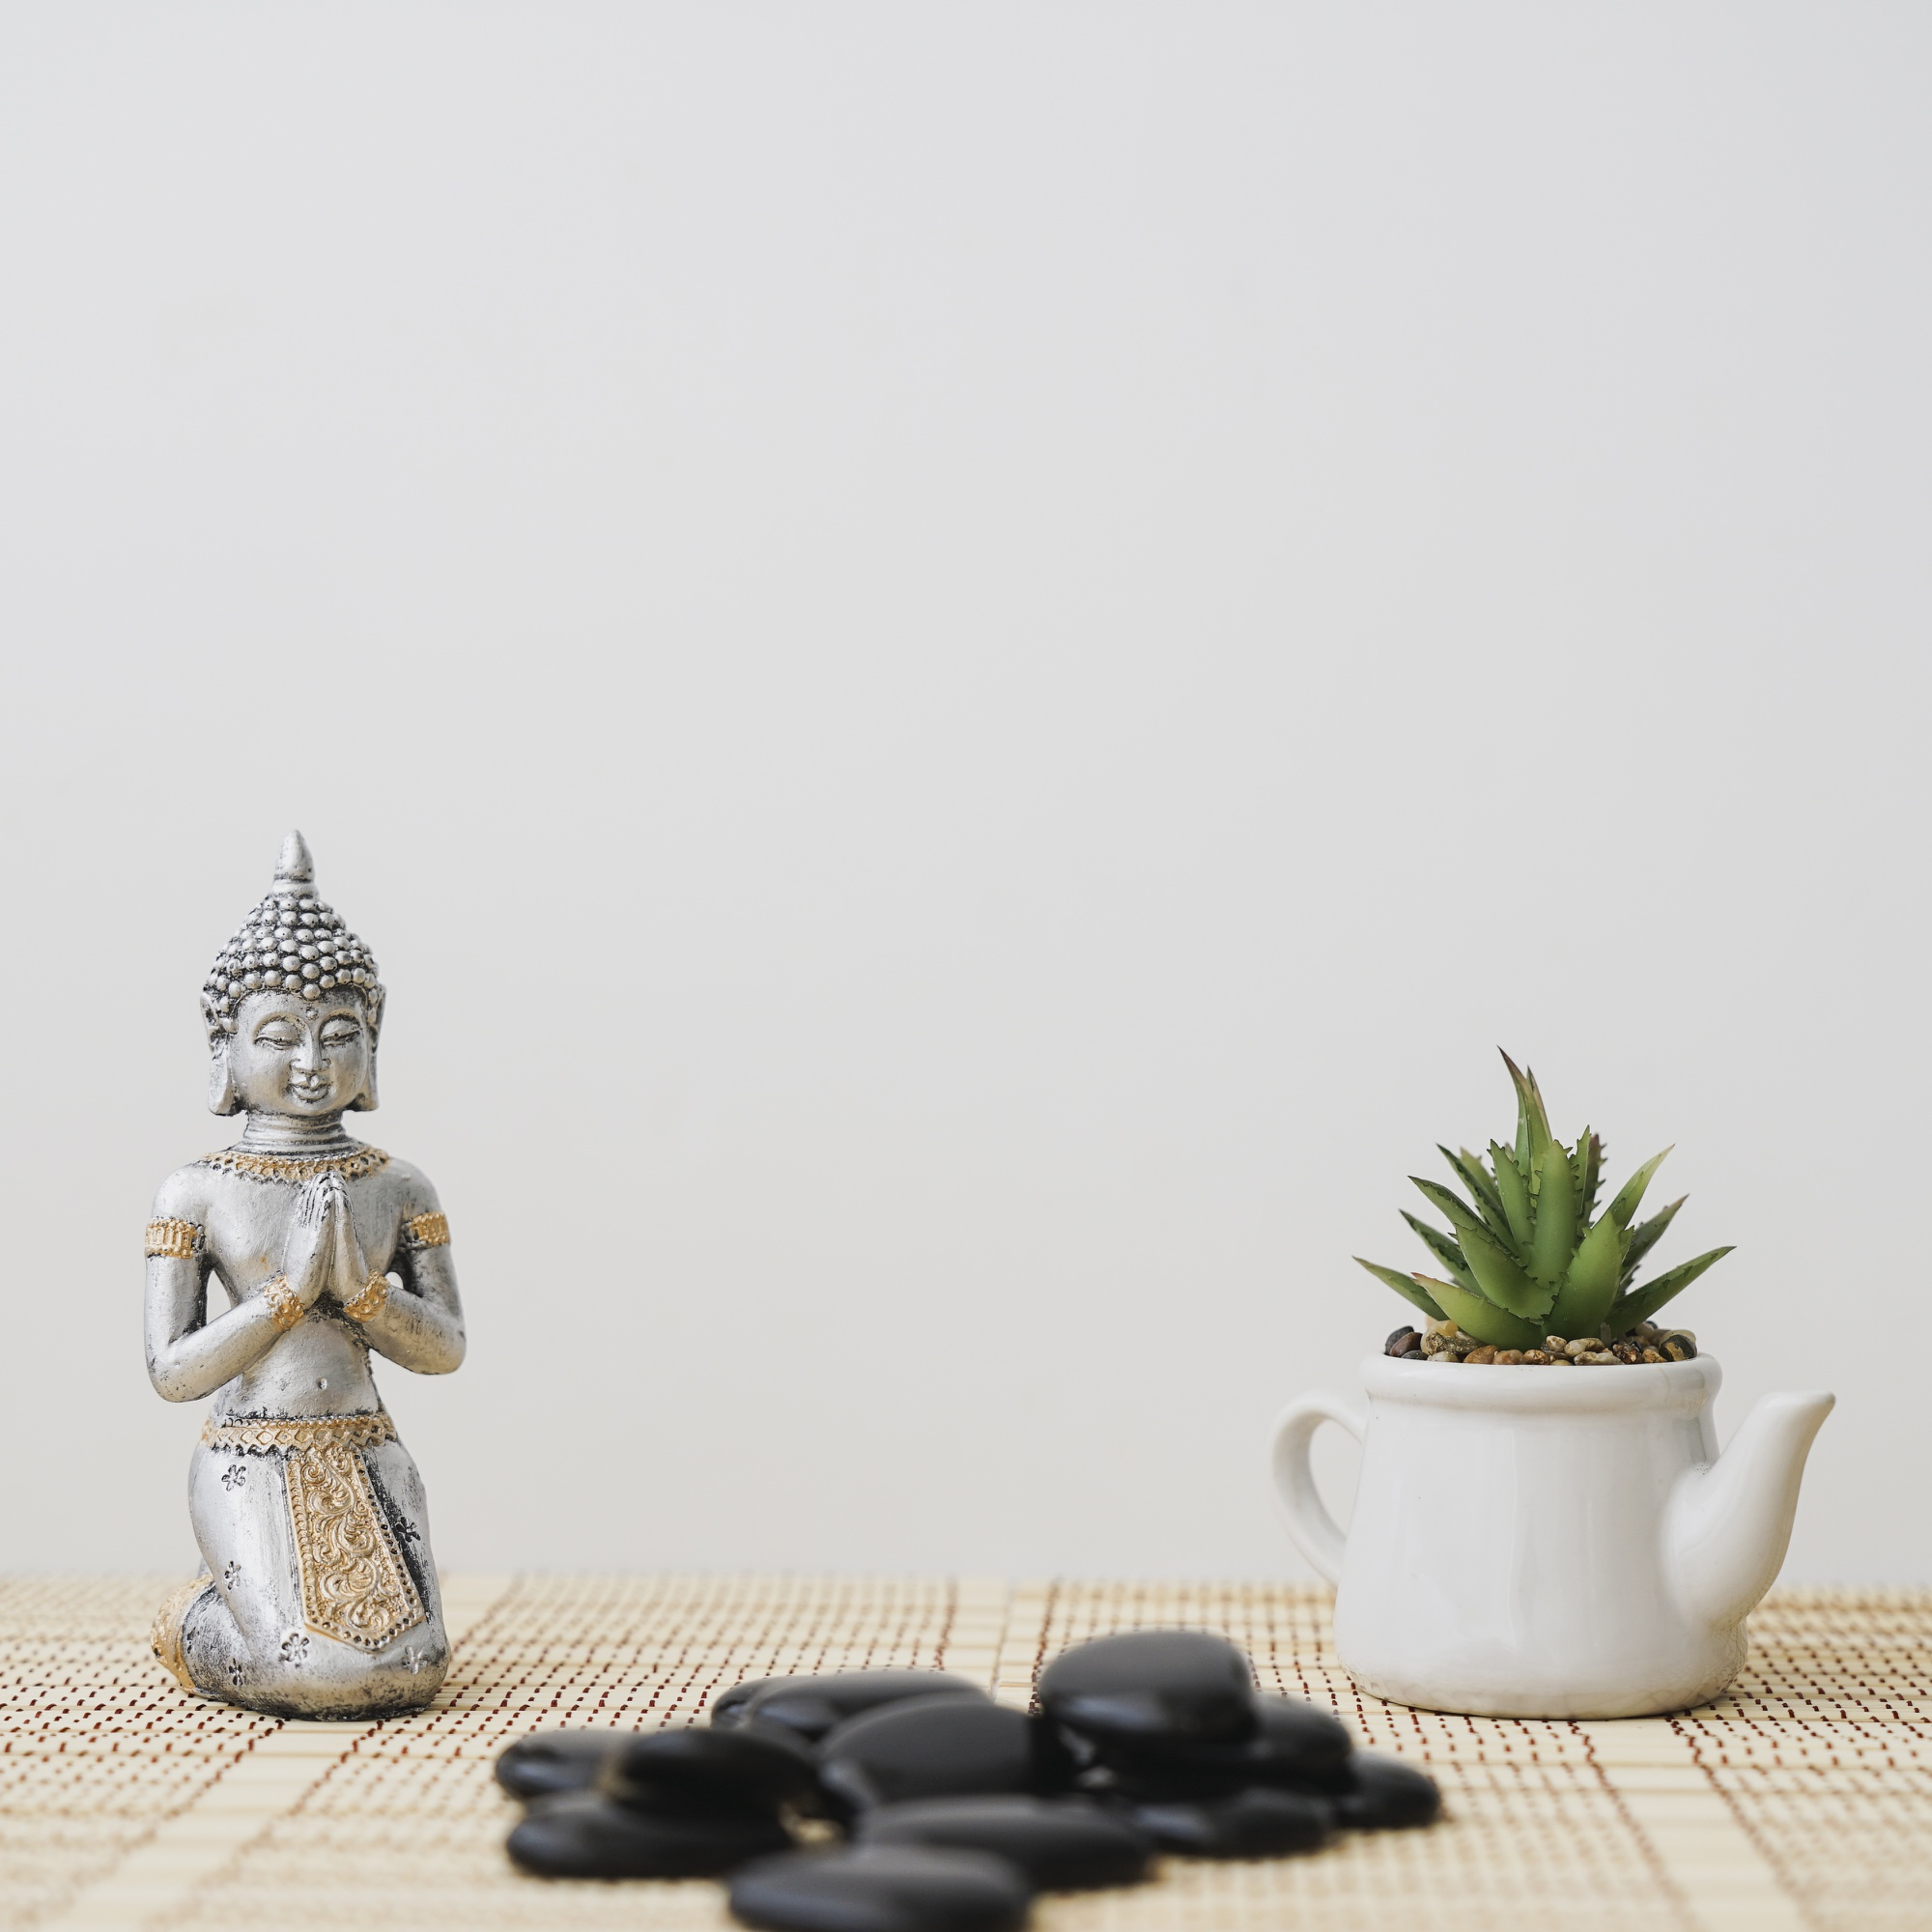 Composition with buddha figure and pot